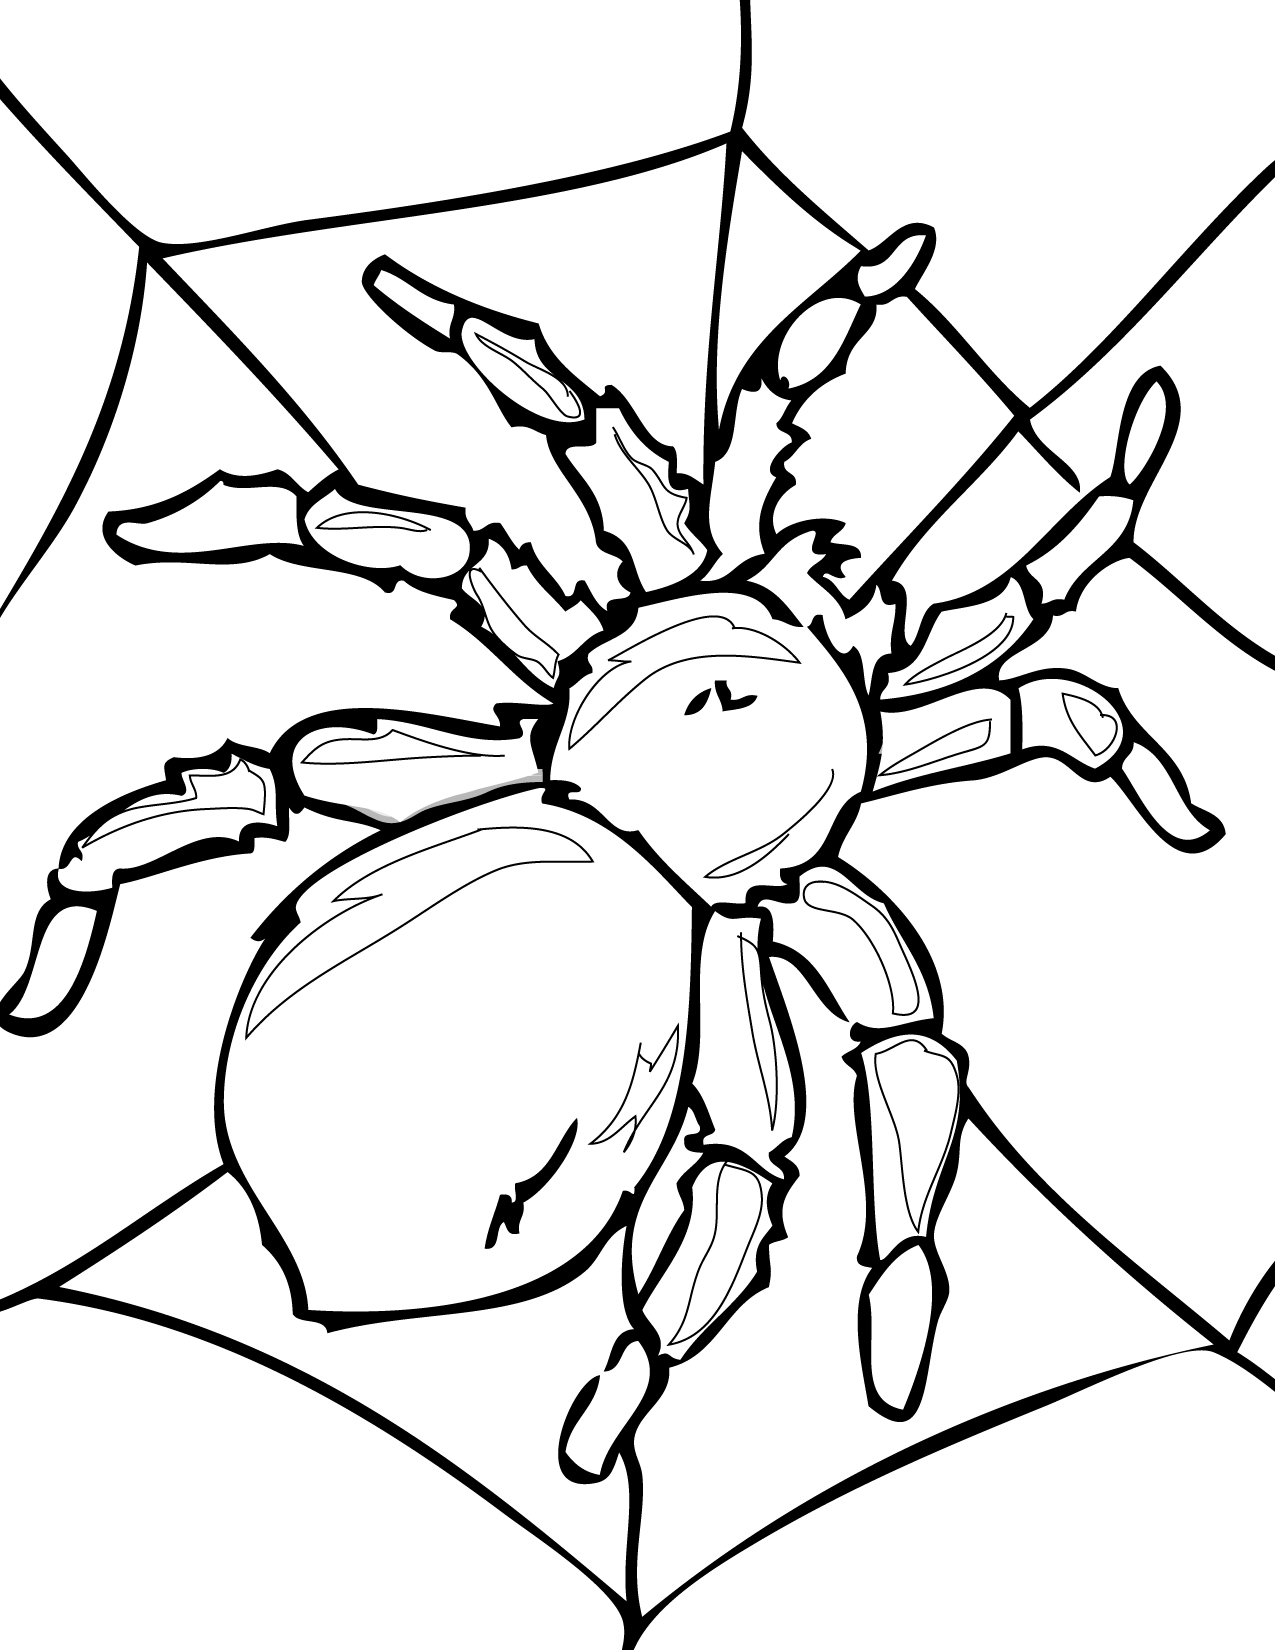 Insects Colouring Pictures Search Results Search Scrappin